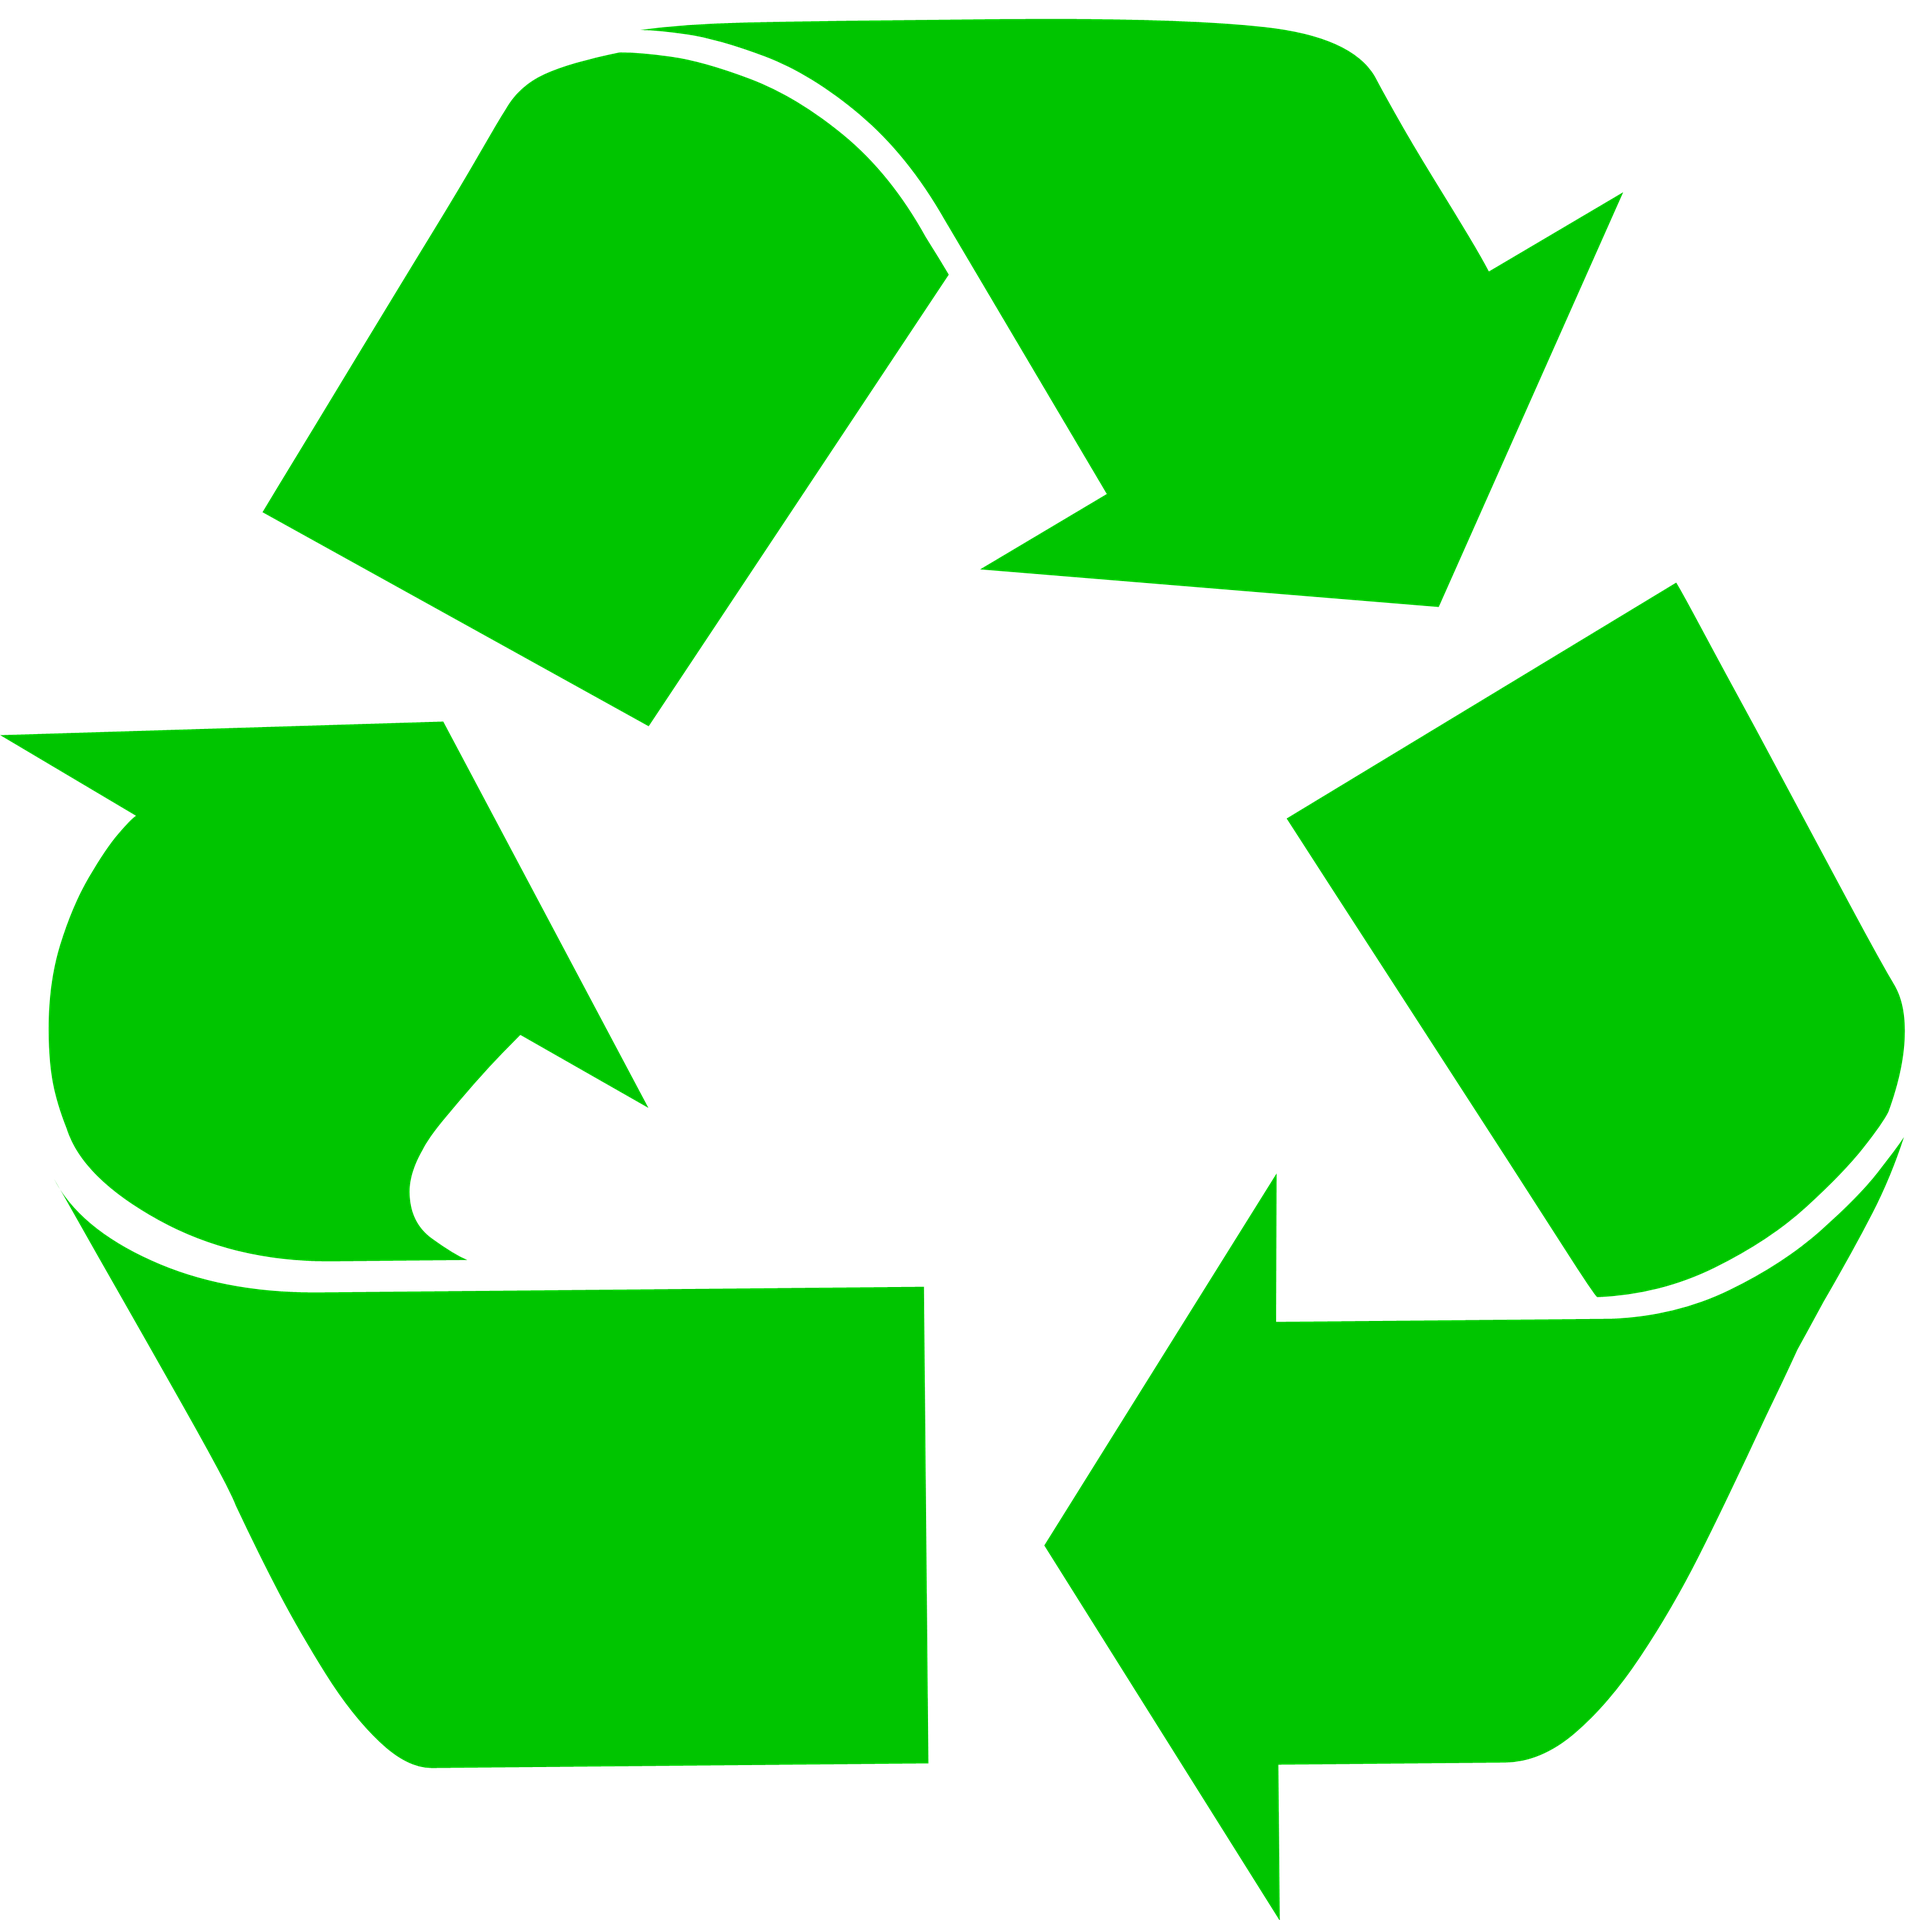 recycling-1341372_1920.png